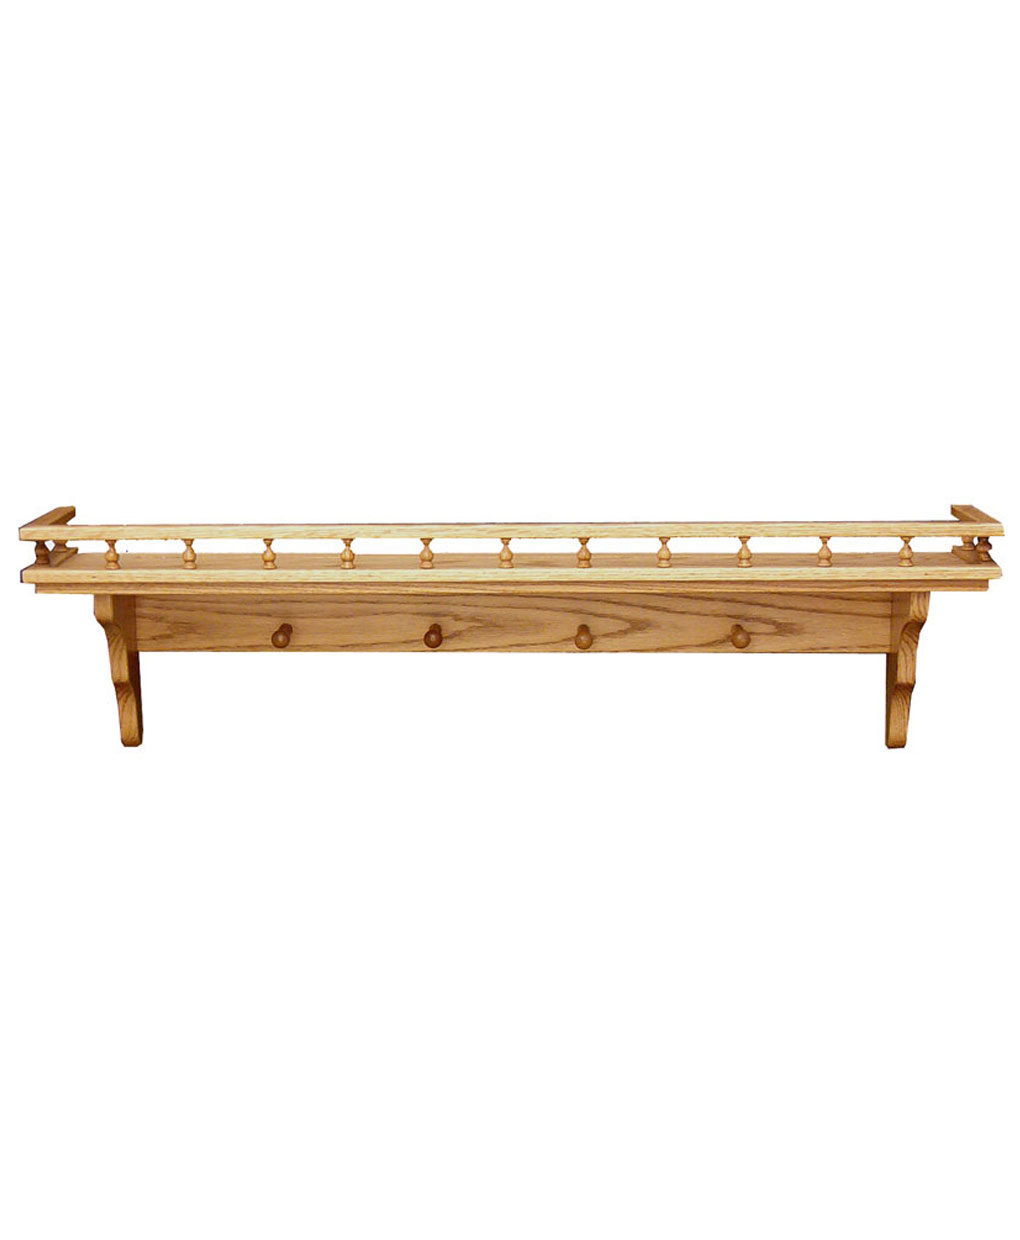 Wall Shelf with Pegs and Railing - Amish Direct Furniture